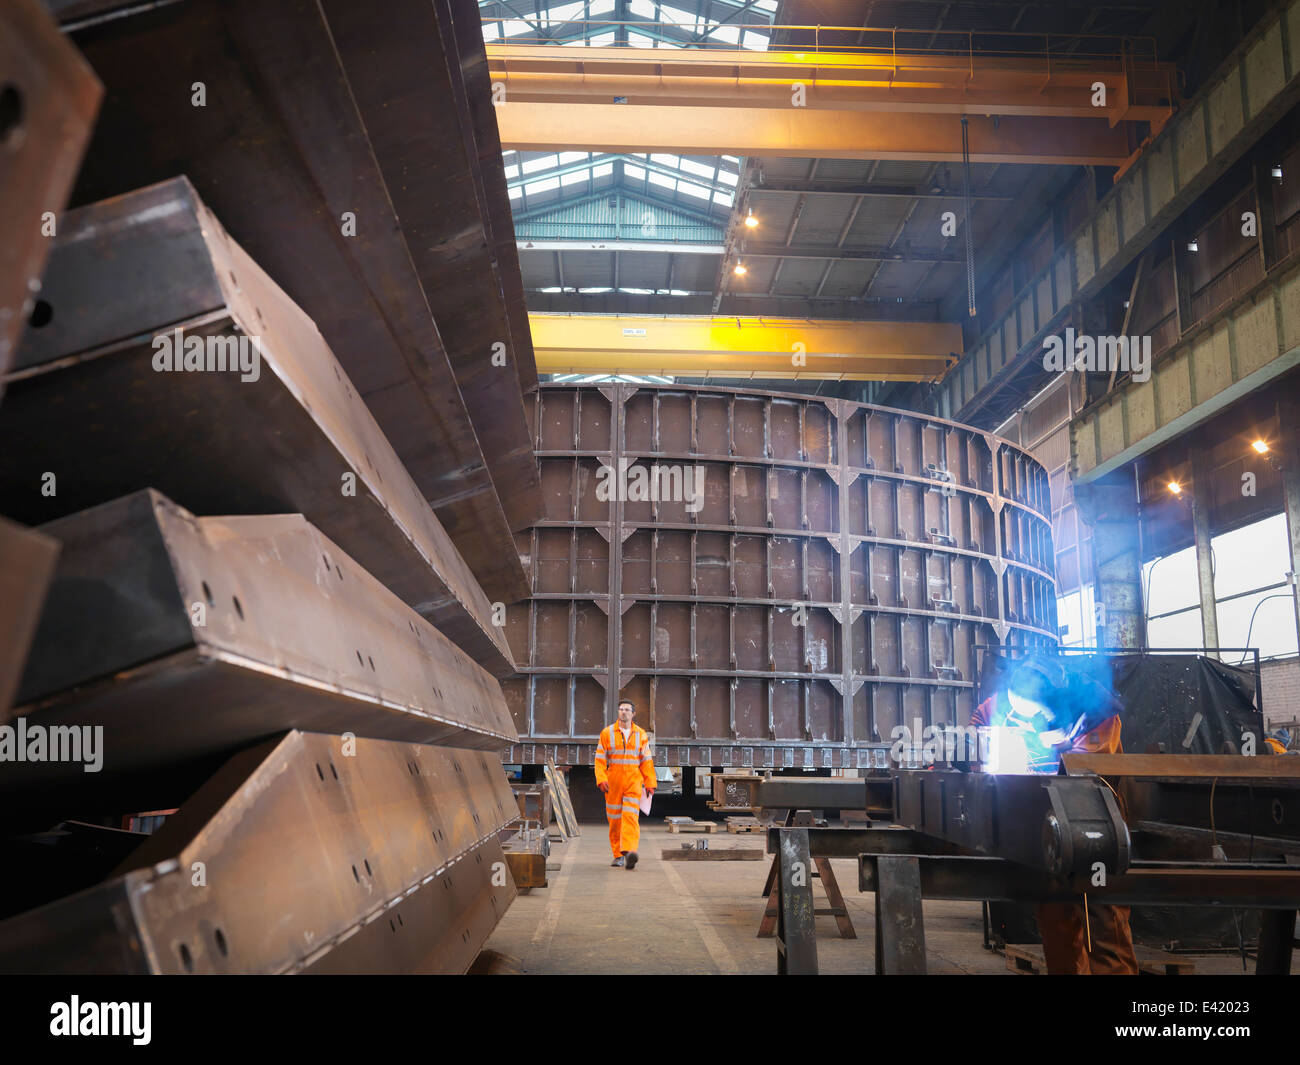 Engineer in marine fabrication factory - Stock Image